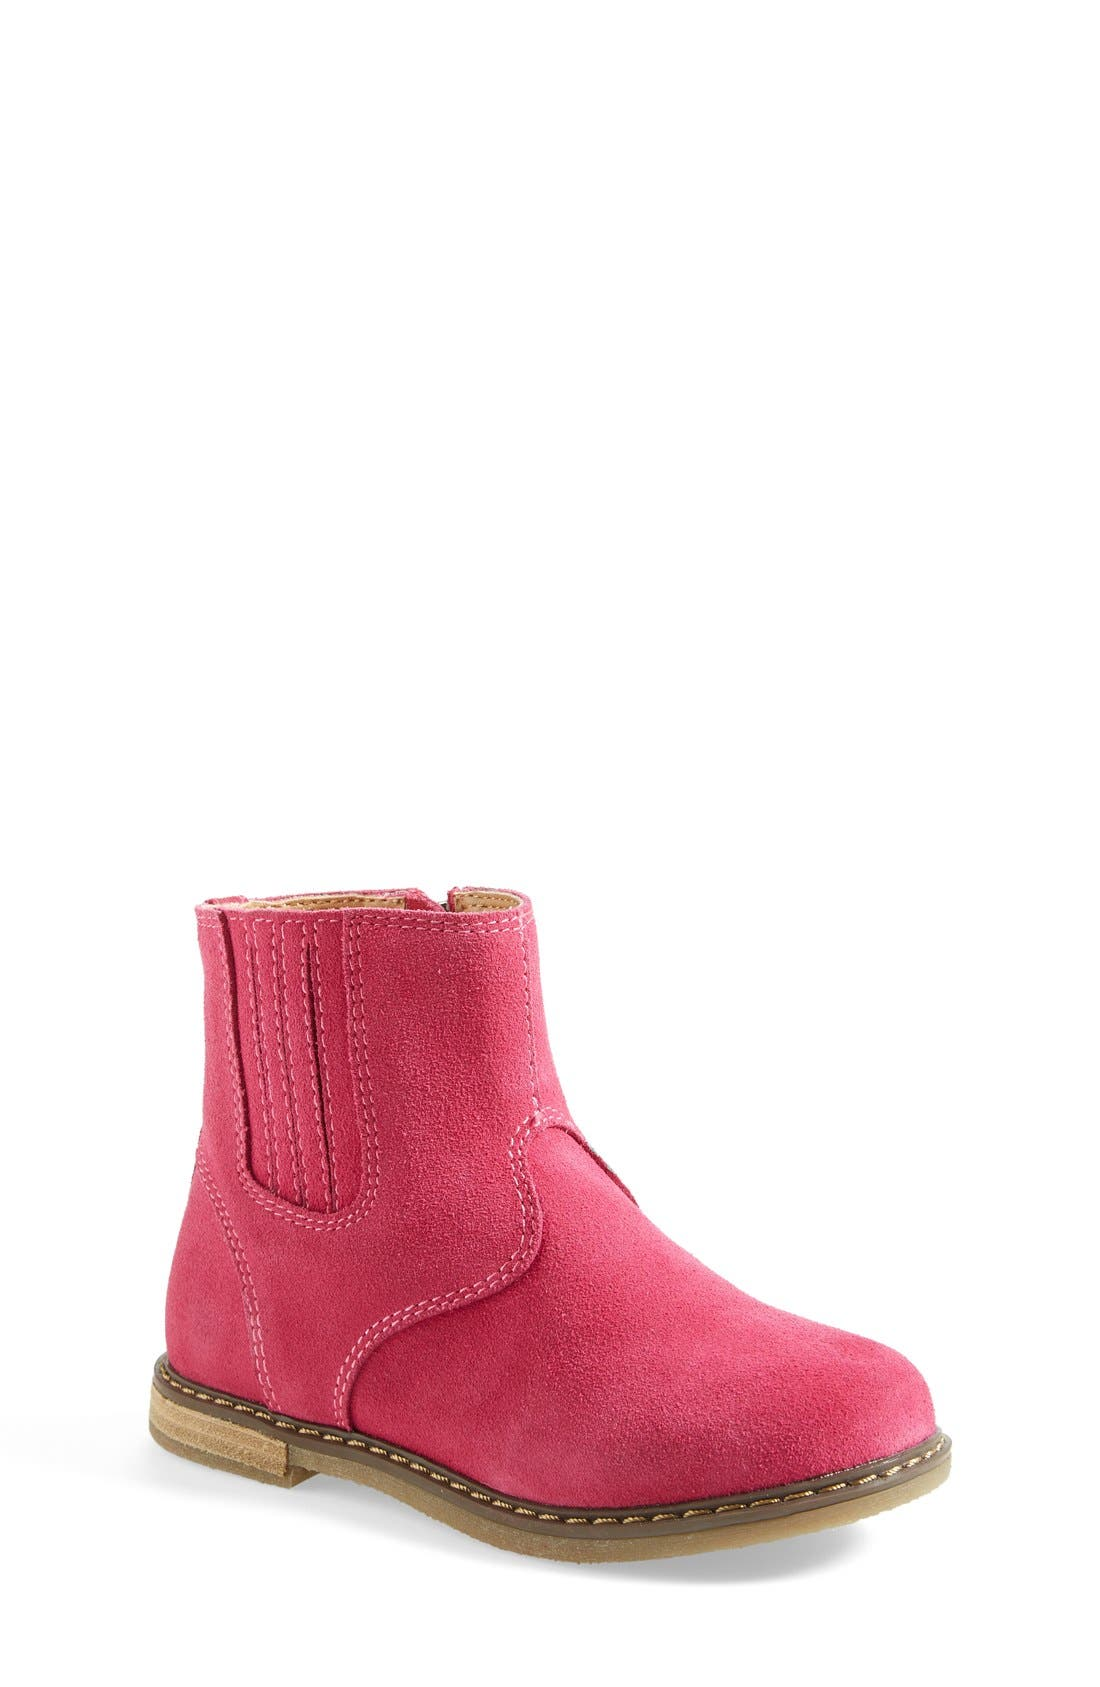 Alternate Image 1 Selected - Tucker + Tate 'Tegan' Ankle Bootie (Toddler & Little Kid)